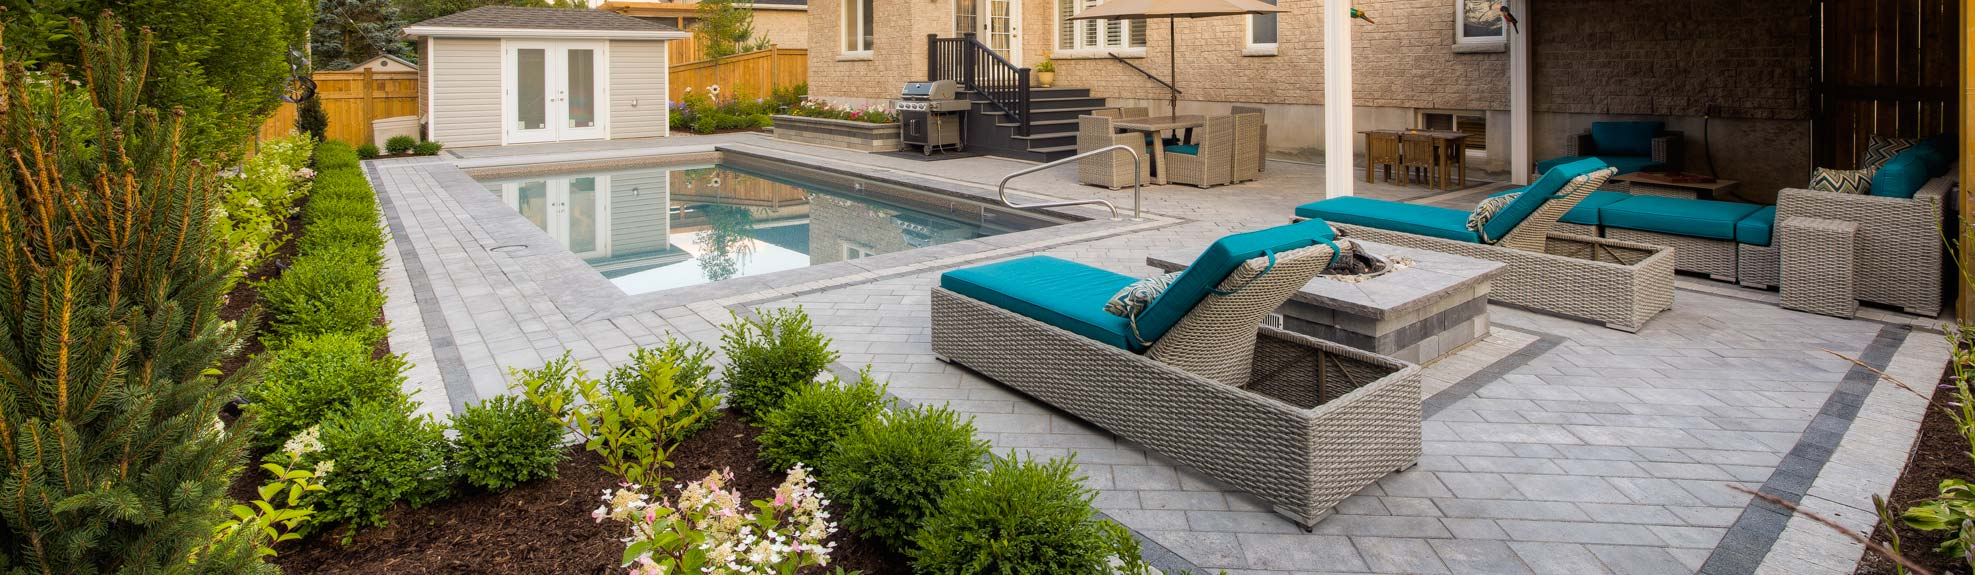 Changing your outdoor living experience!